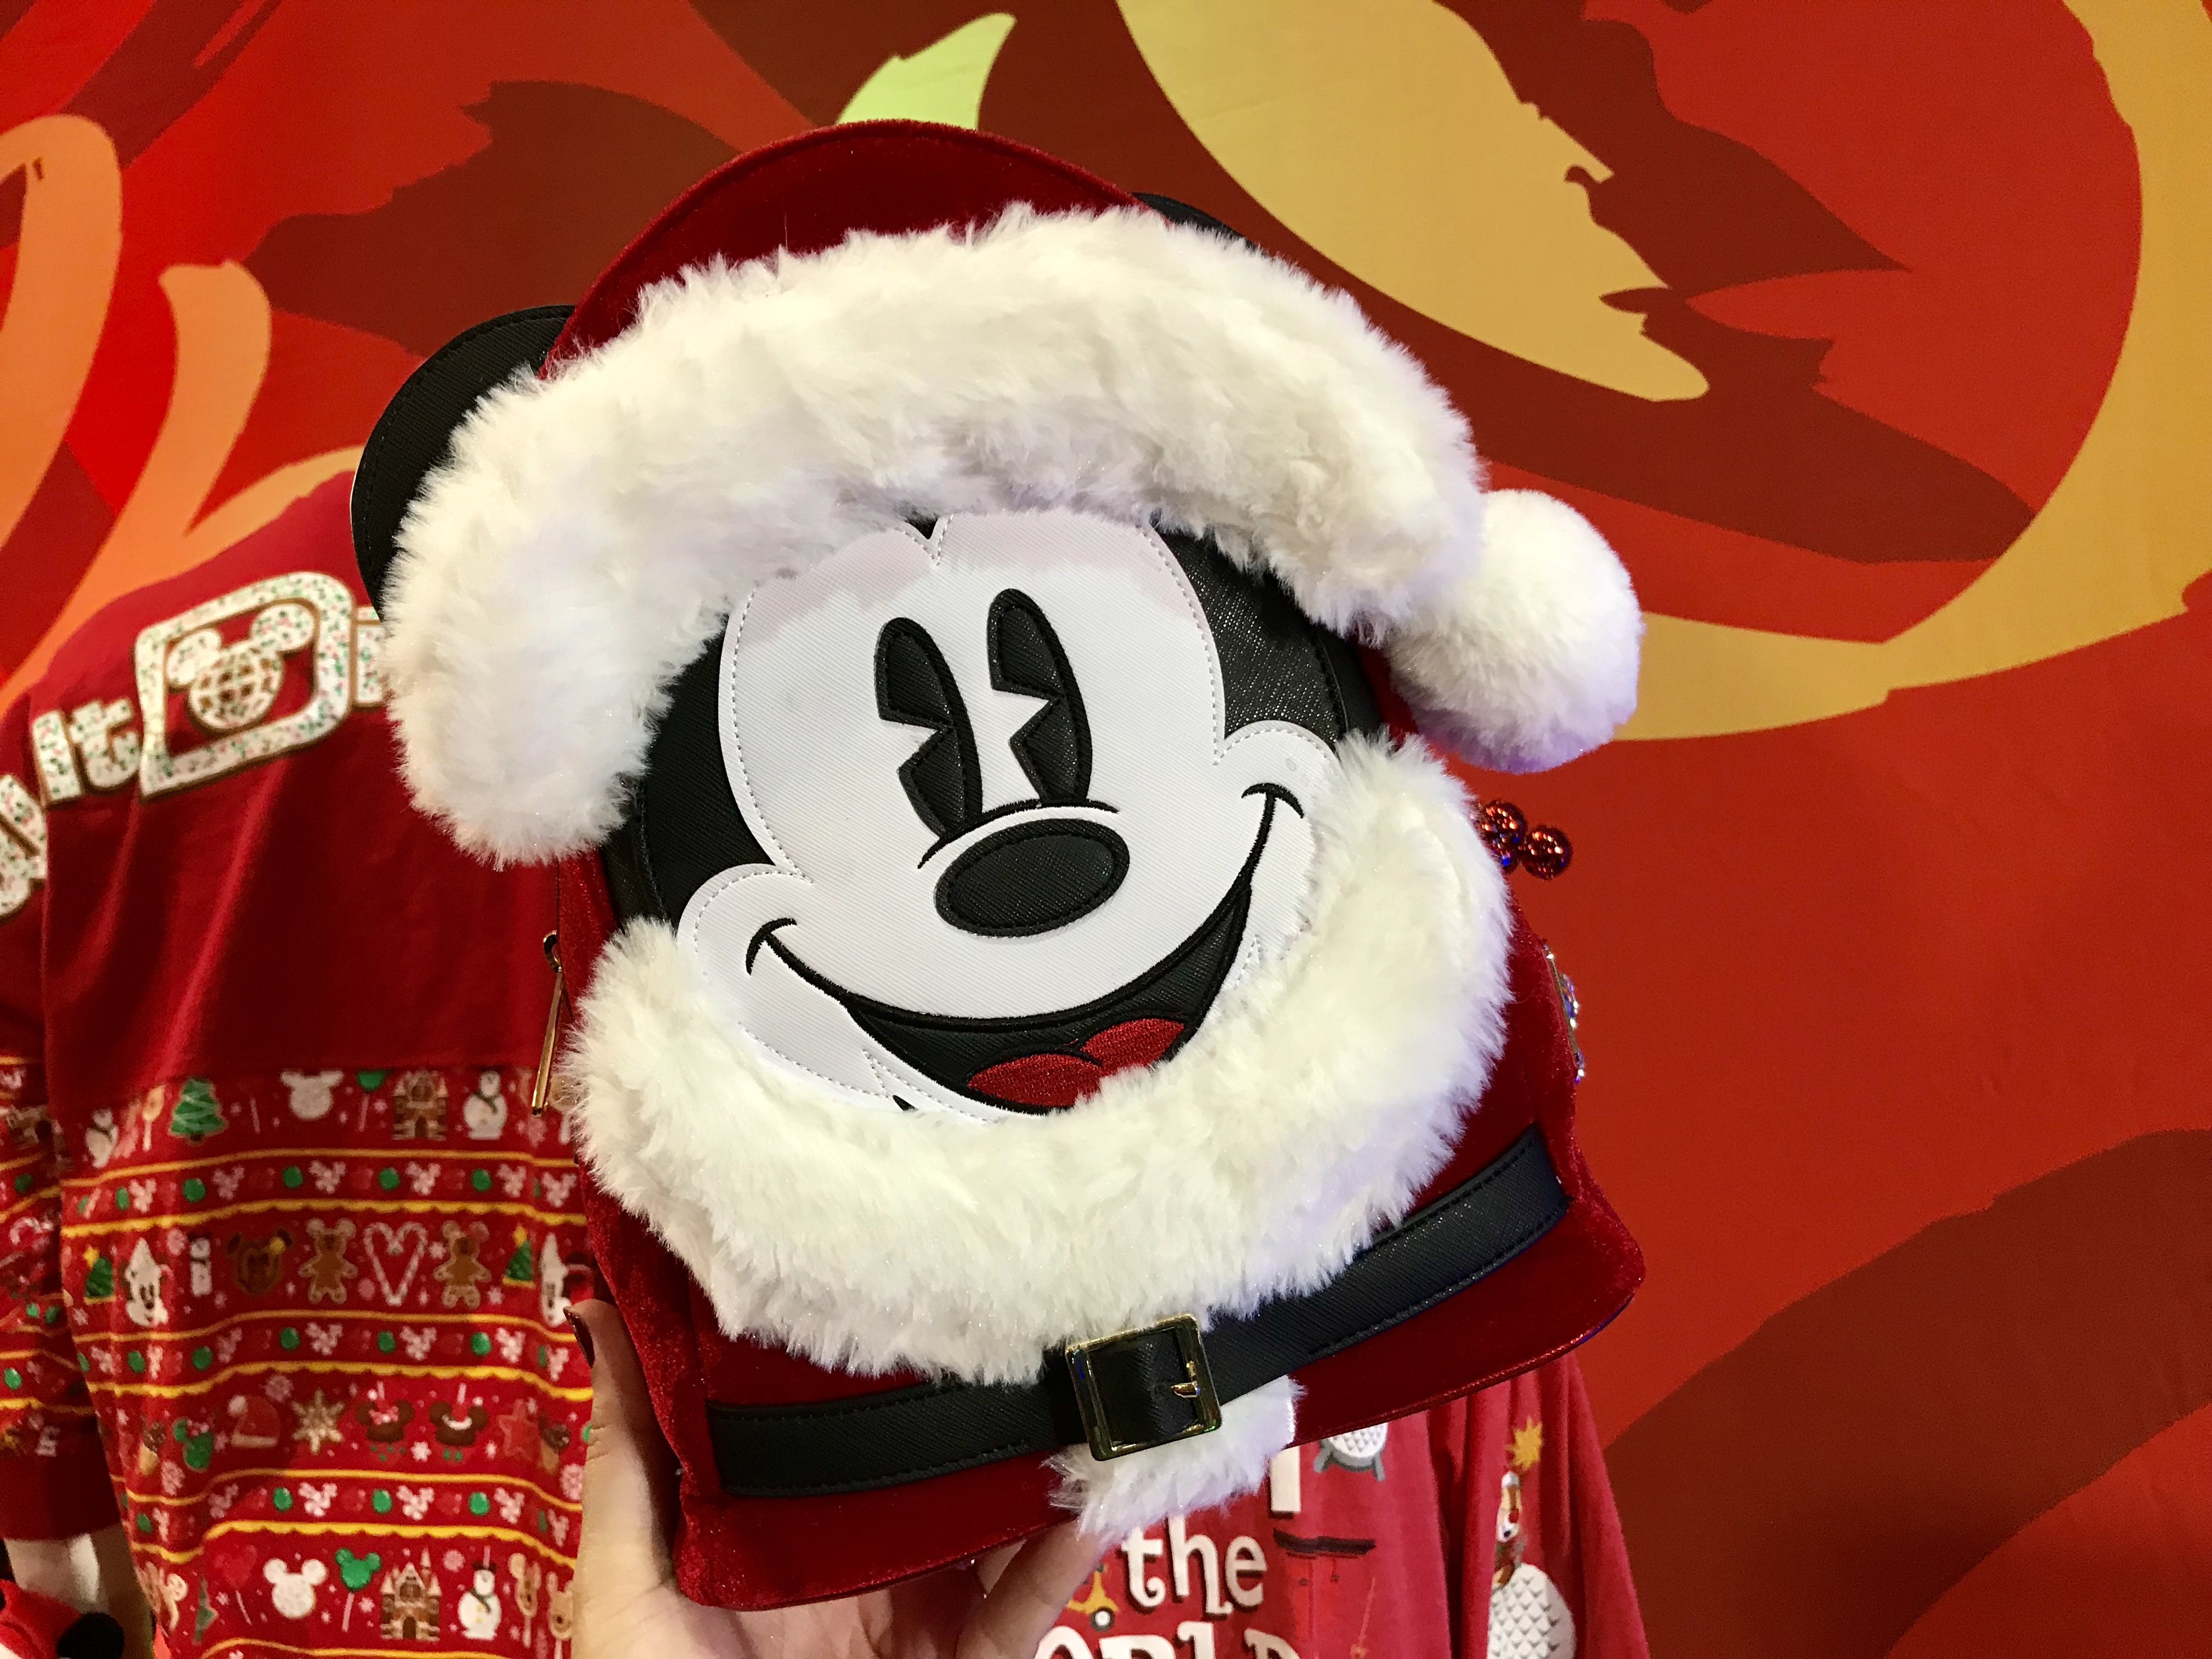 Festive New Disney Holiday Bags From Loungefly And More 6